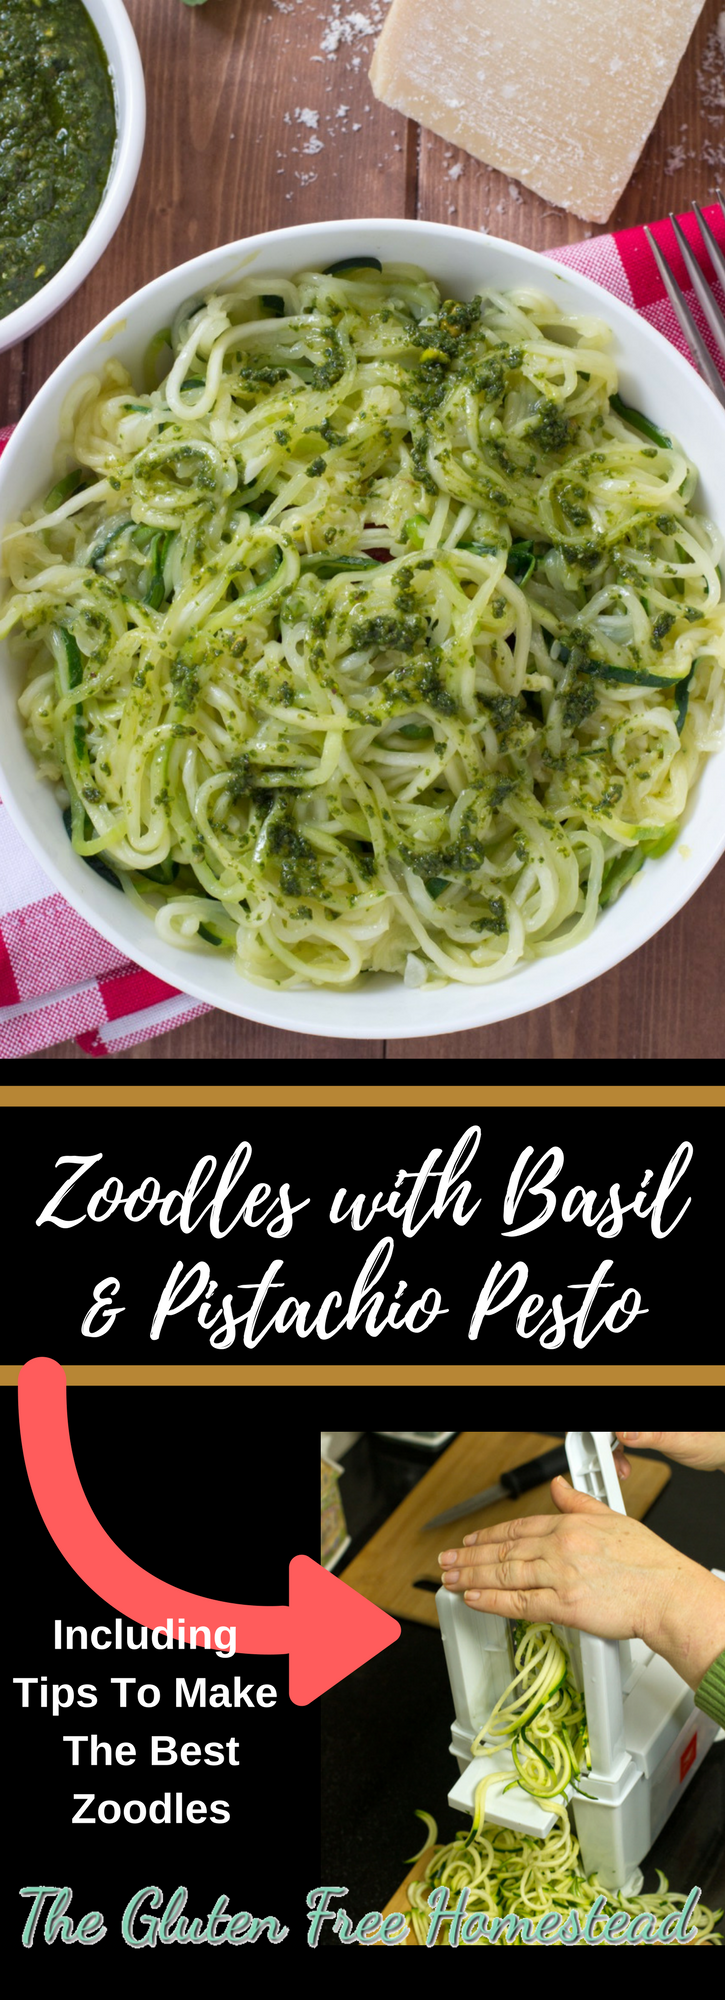 Tips & How to make zoodles | Zucchini Noodles recipe | Spiralizer | delicious spaghetti substitute | Easy pesto sauce recipe | gluten free recipe | paleo recipe | whole 30 | low carb | healthy | skinny taste | pasta substitute